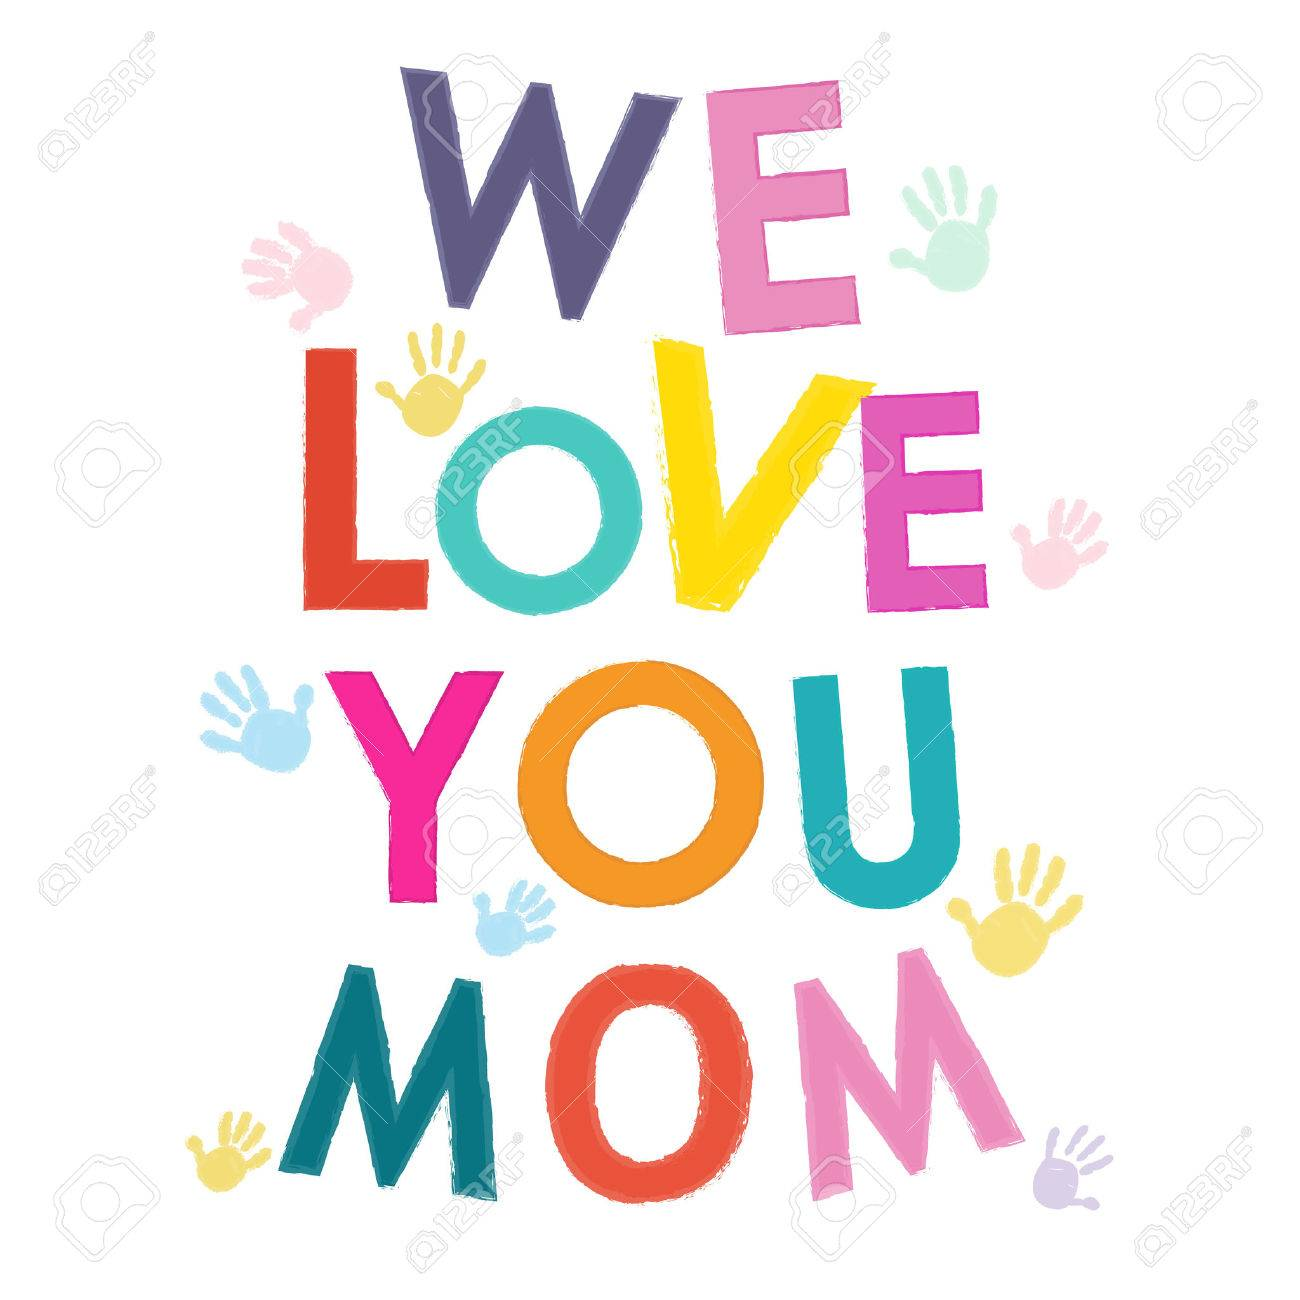 We love you mom happy mothers day greeting card royalty free we love you mom happy mothers day greeting card stock vector 40162635 kristyandbryce Image collections